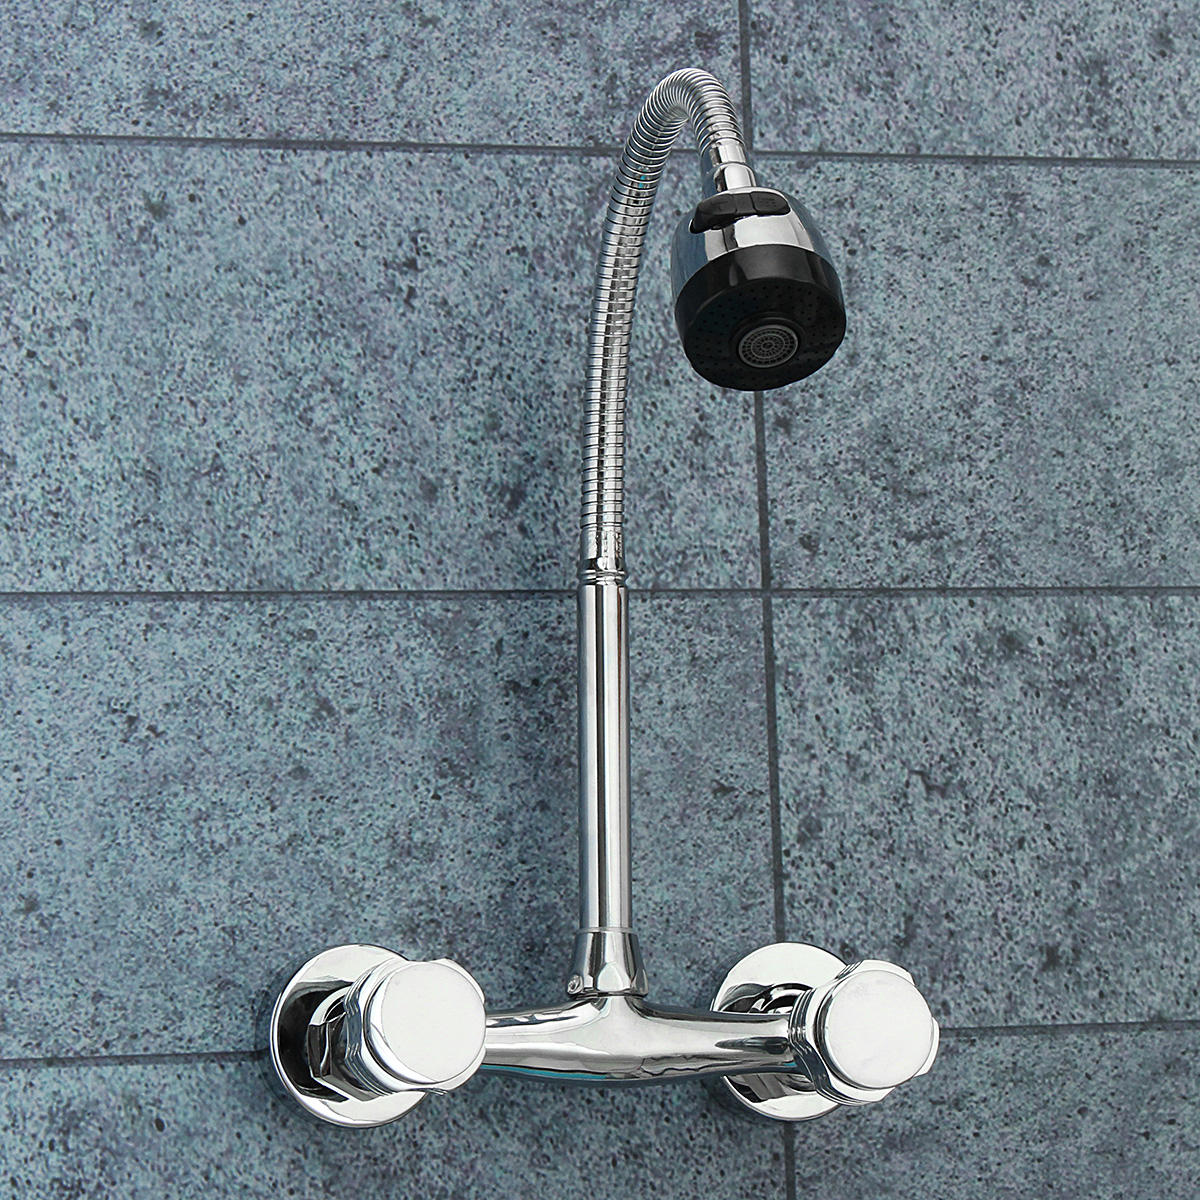 Chrome Basin Sink Mixer Tap Dual Handle Hot Cold Water Faucet Adjustable Swivel Spout Kitchen фото